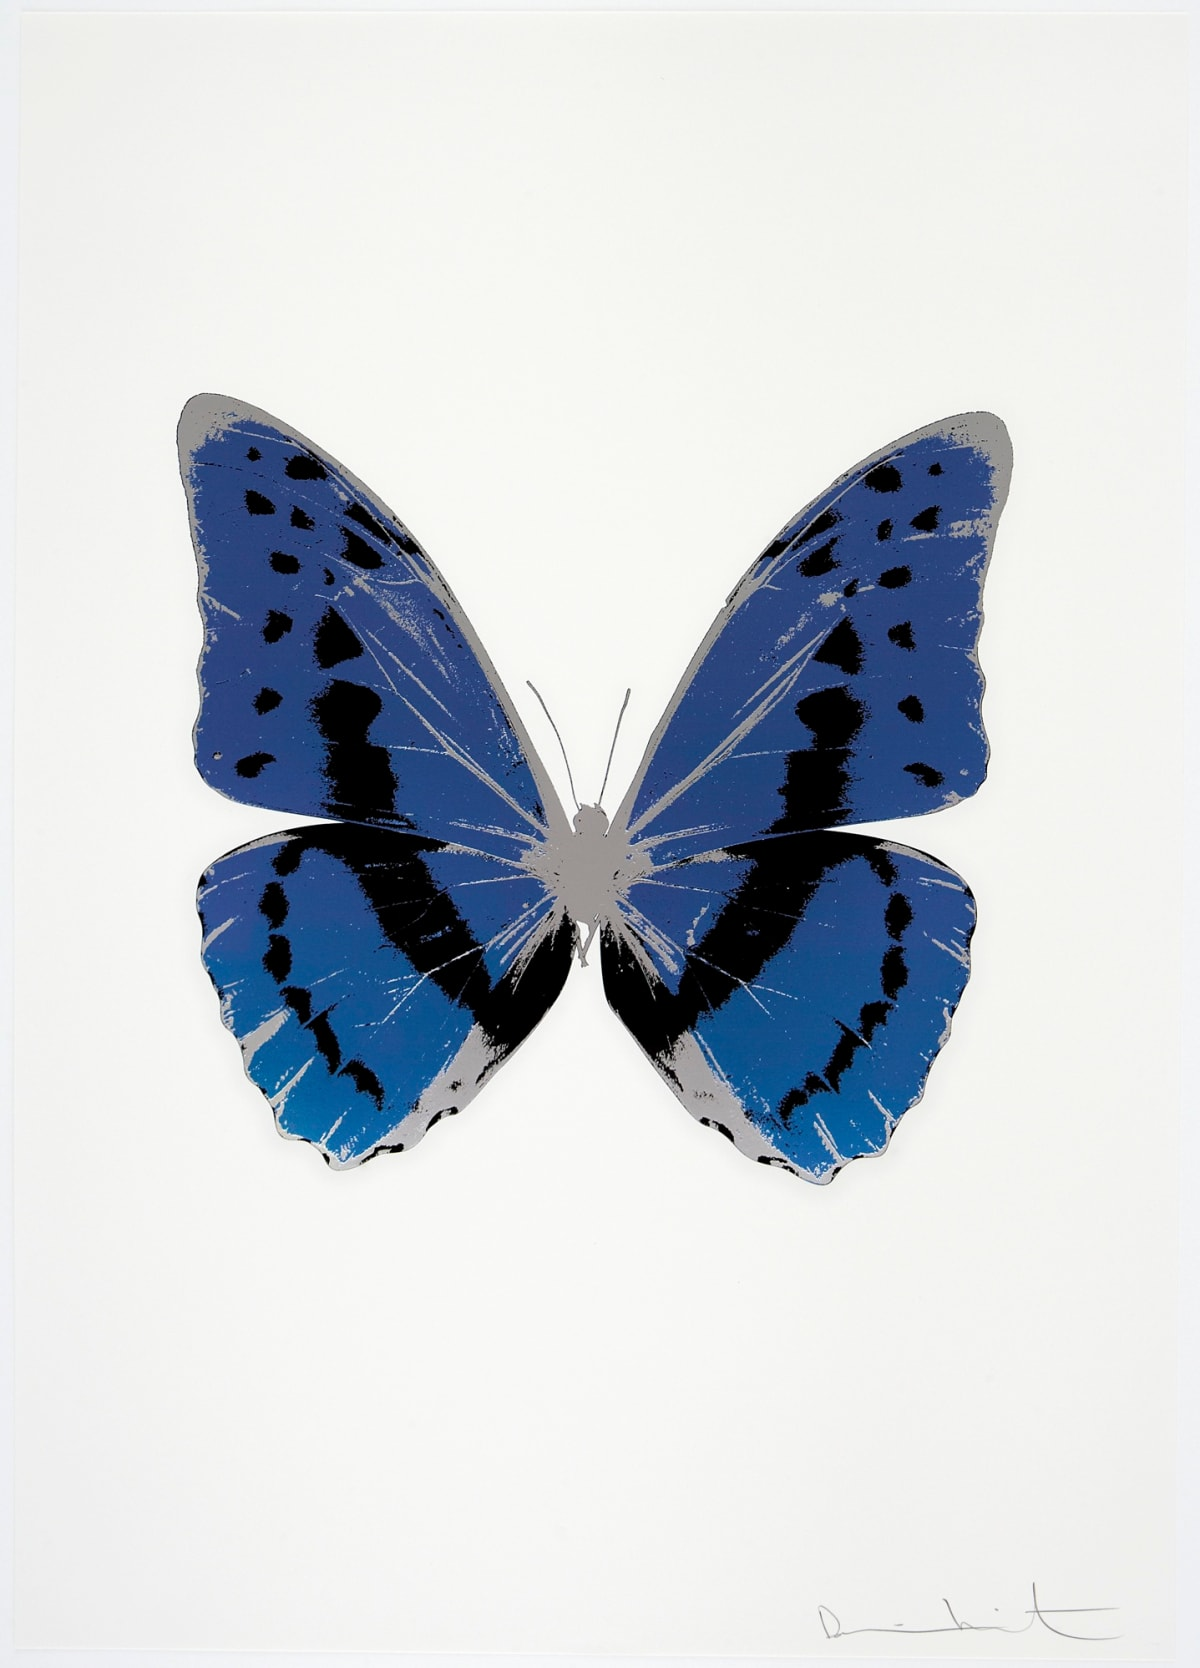 Damien Hirst The Souls III - Frost Blue/Raven Black/Silver Gloss, 2010 3 colour foil block on 300gsm Arches 88 archival paper. Signed and numbered. Published by Paul Stolper and Other Criteria 72 x 51cm OC7903 / 660-6 Edition of 15